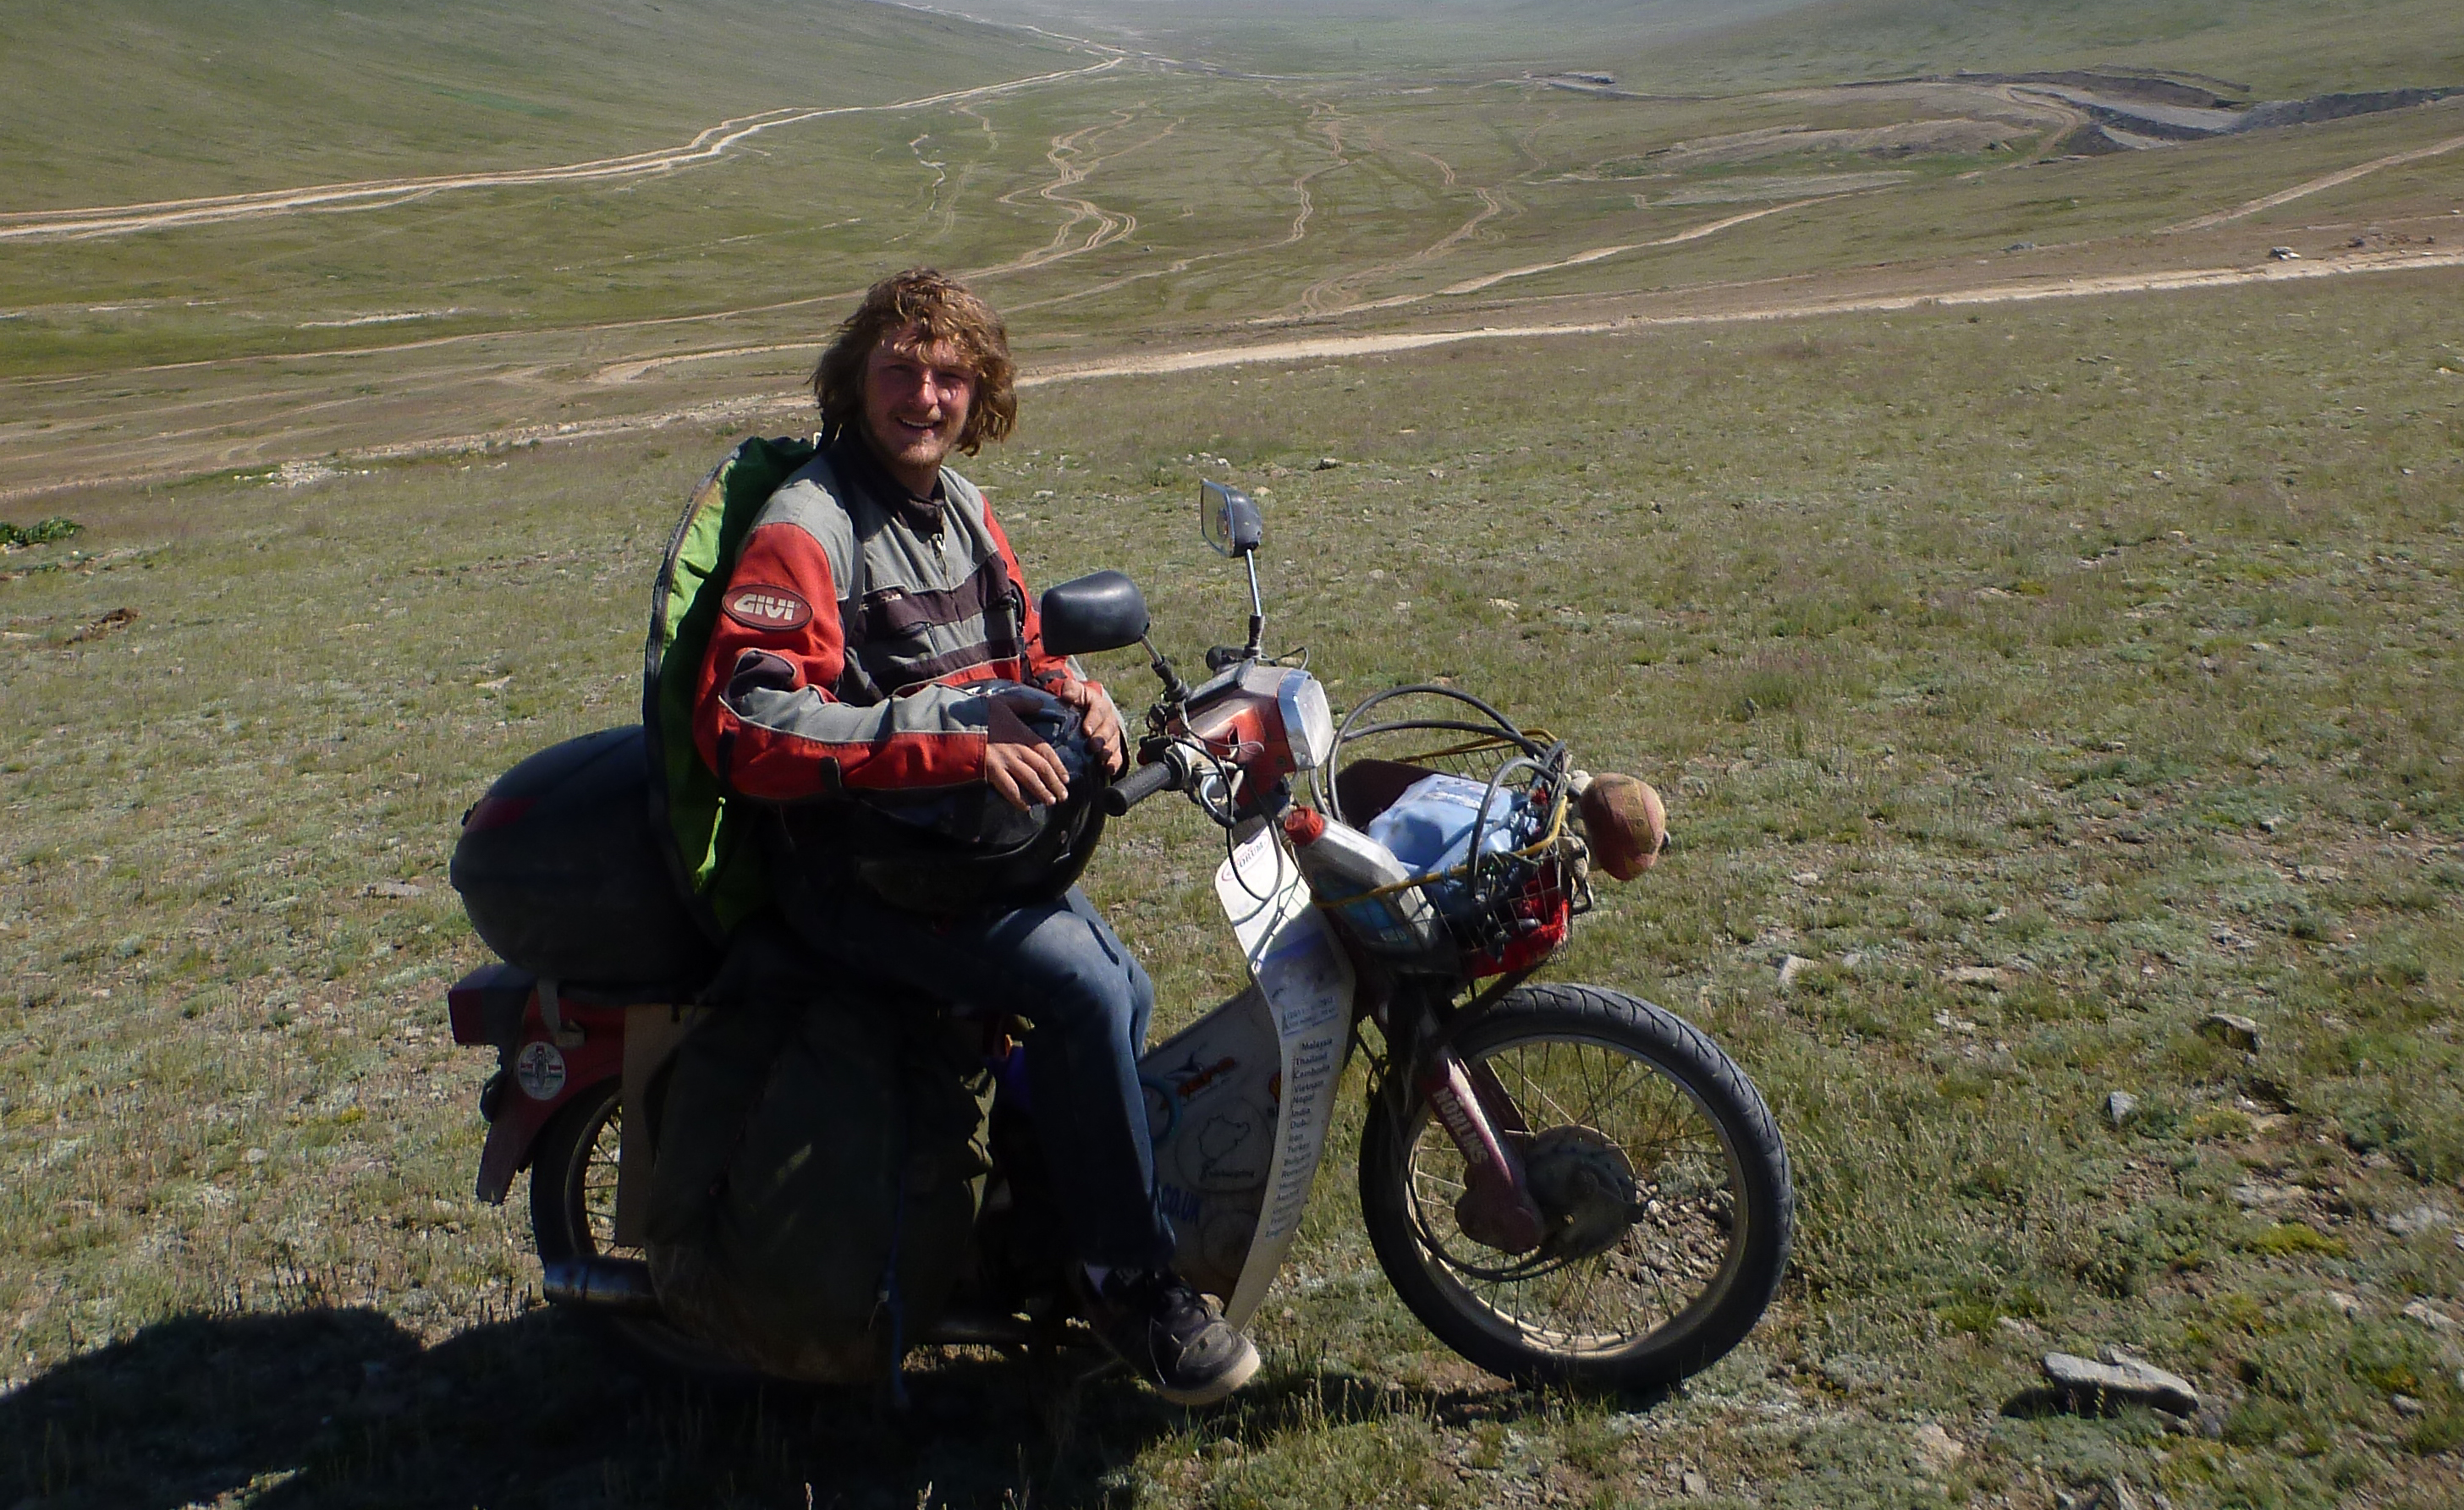 Ed March - Around The World On A 30-Year-Old Honda C90